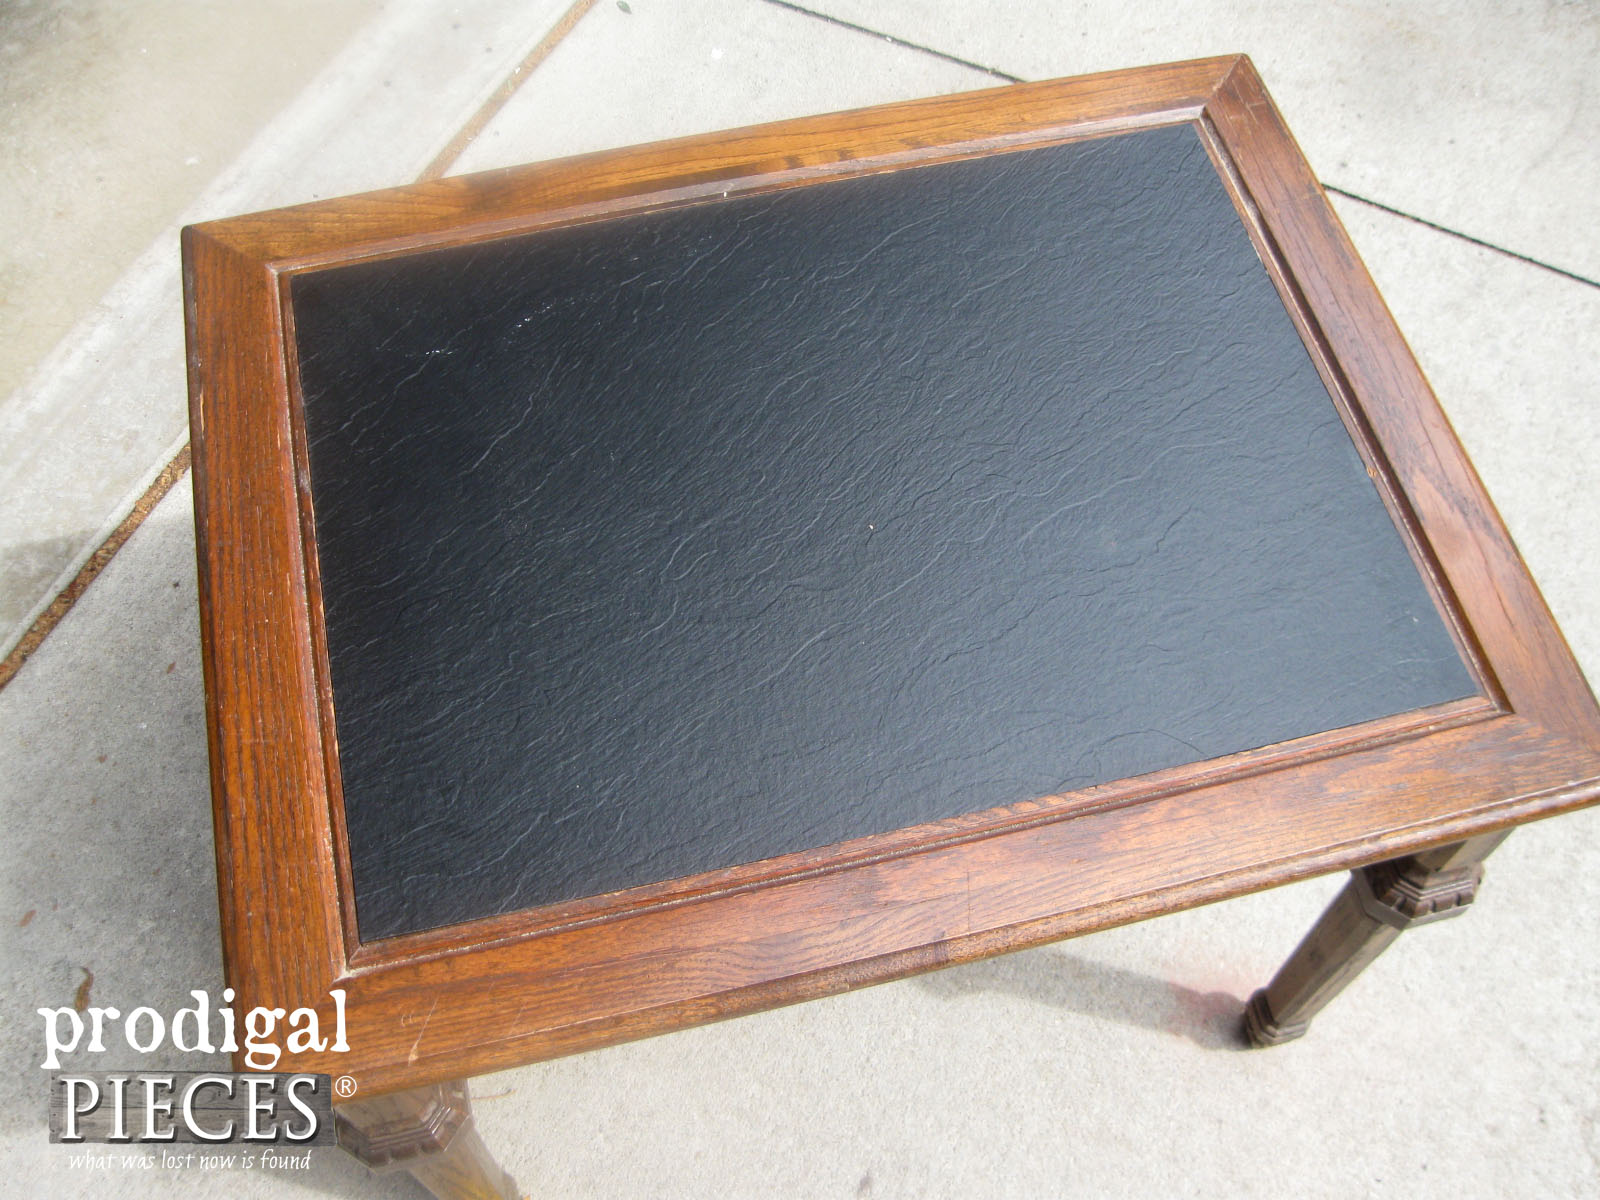 Top of Vintage Mersman Side Table with Faux Textured Top | Prodigal Pieces | www.prodigalpieces.com